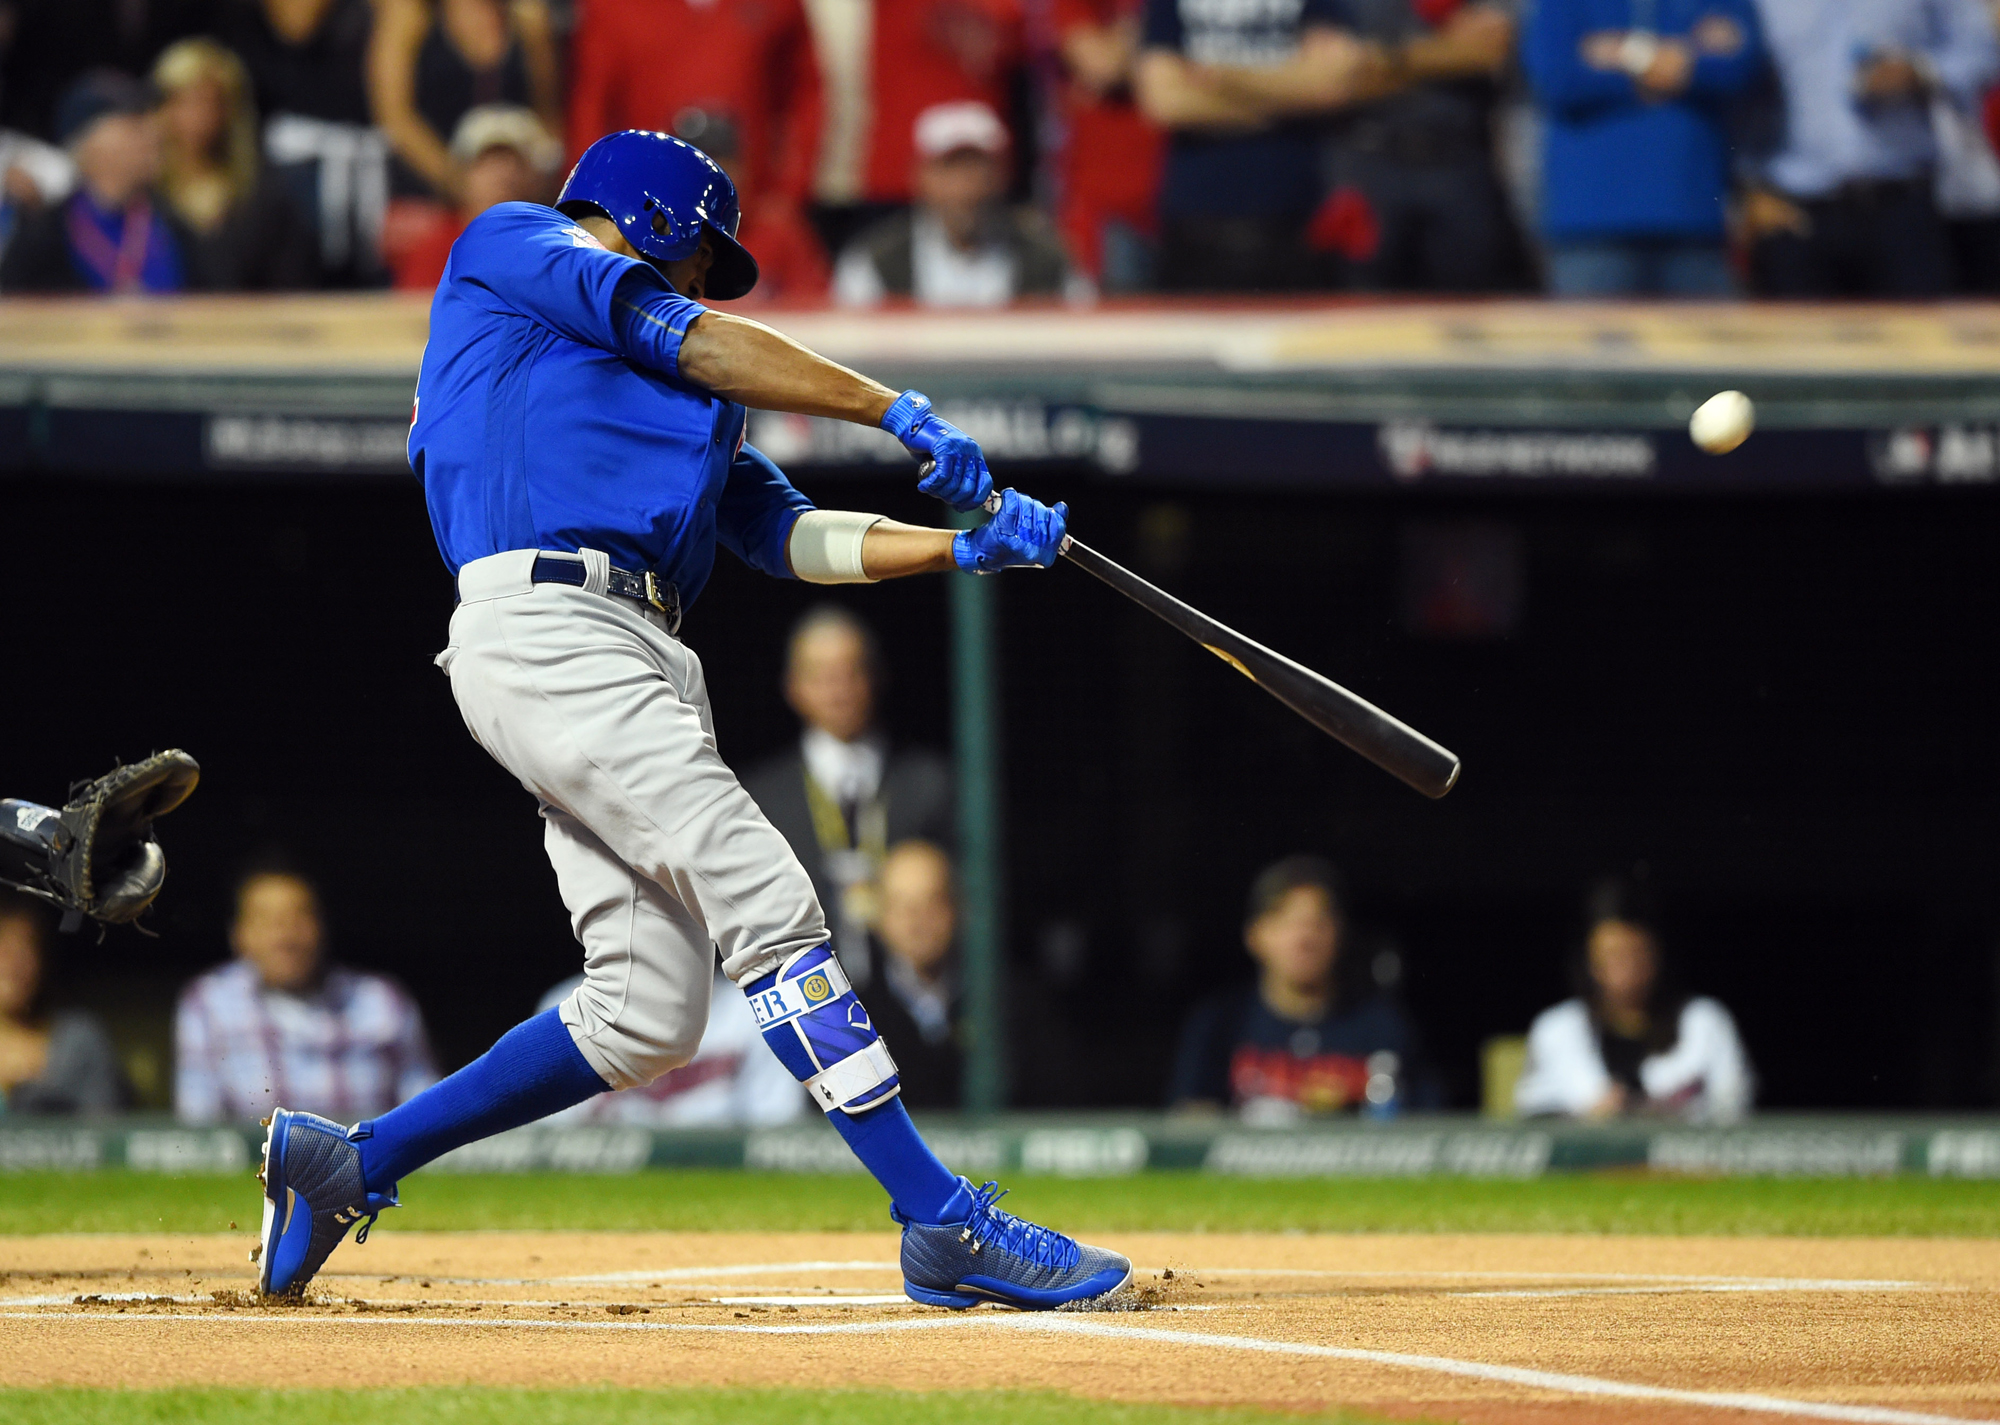 Chicago Cubs center fielder Dexter Fowler hits a solo home run against the Cleveland Indians in the first inning in game seven of the 2016 World Series at Progressive Field.